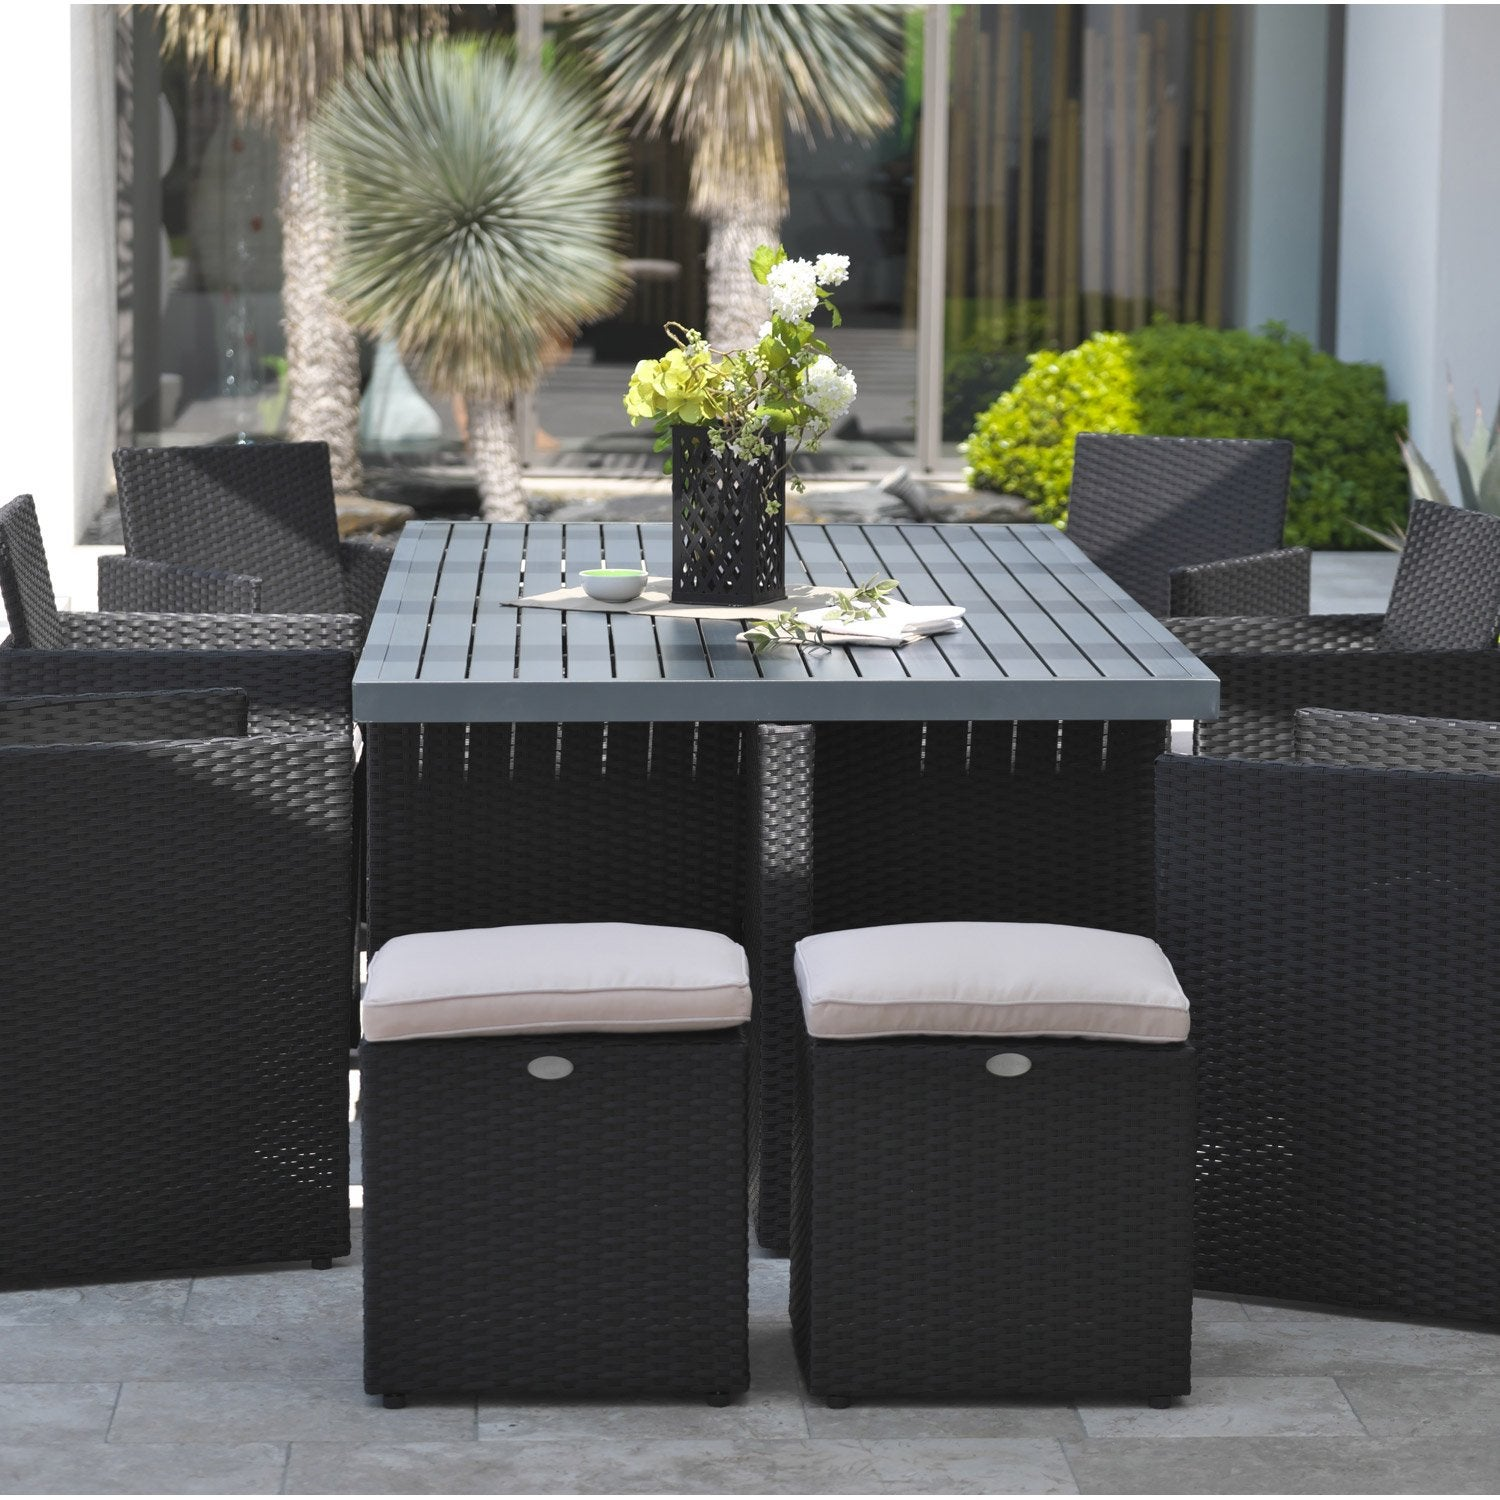 salon de jardin encastrable r sine tress e noir 10 personnes leroy merlin. Black Bedroom Furniture Sets. Home Design Ideas